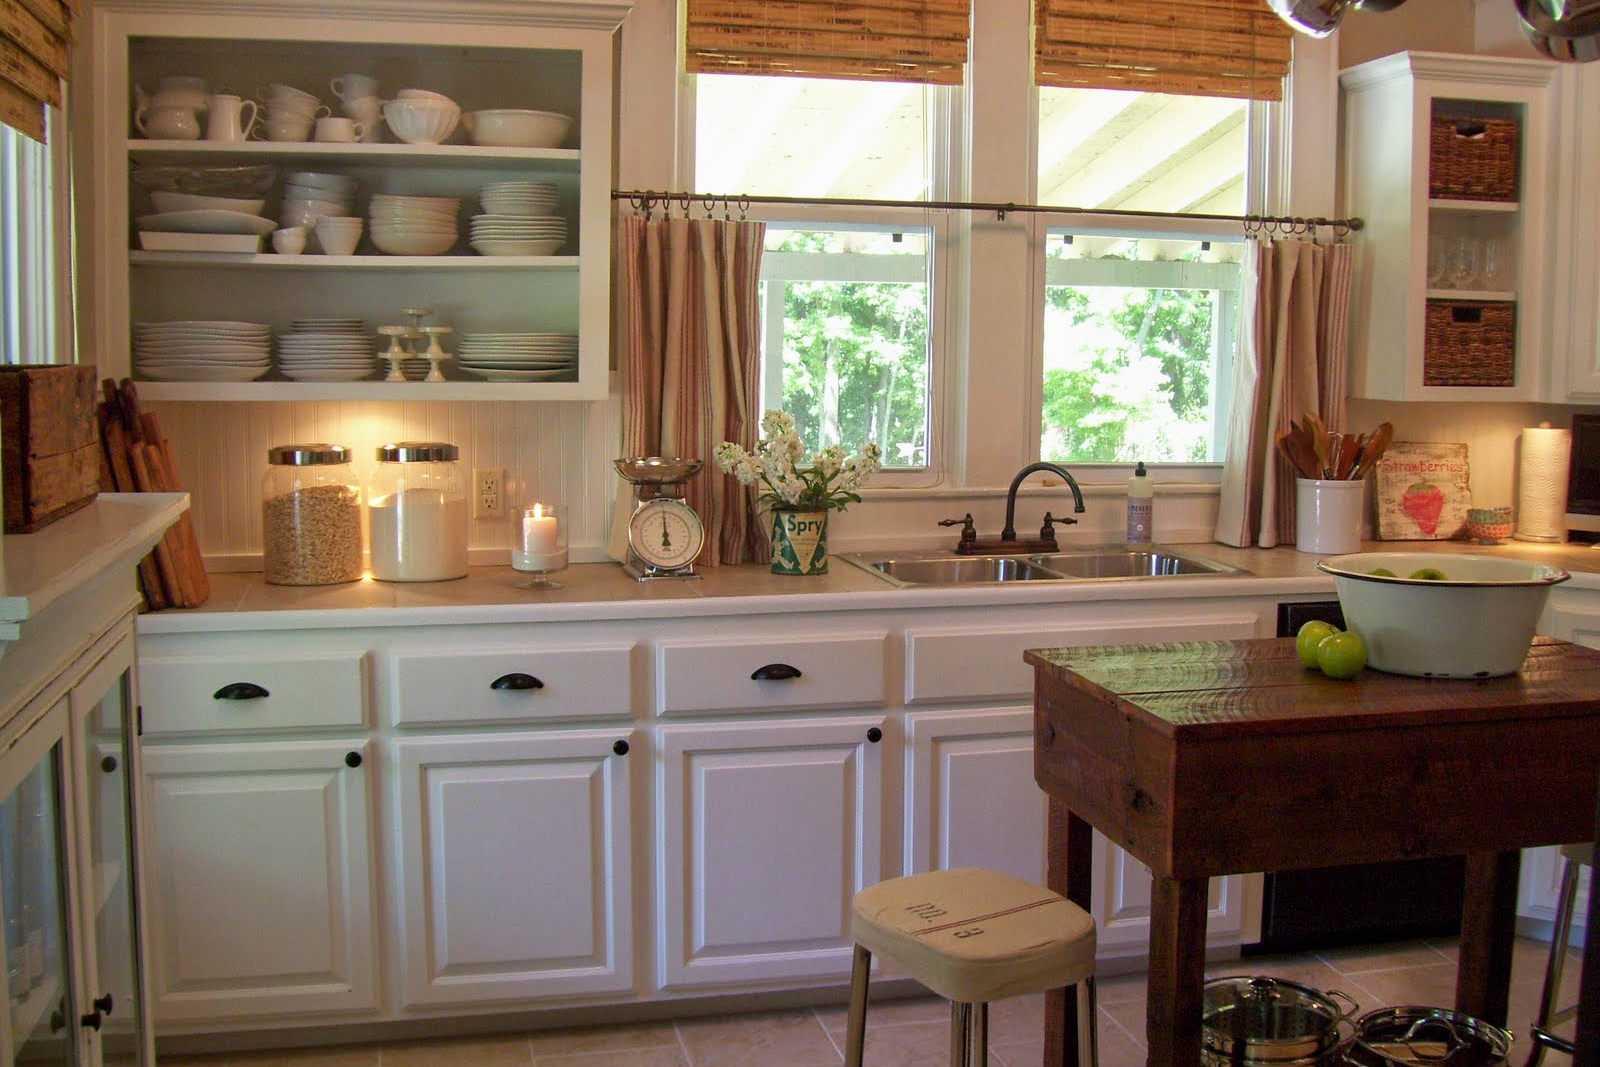 Kitchen Redesign On A Budget Wpa Wpart Co